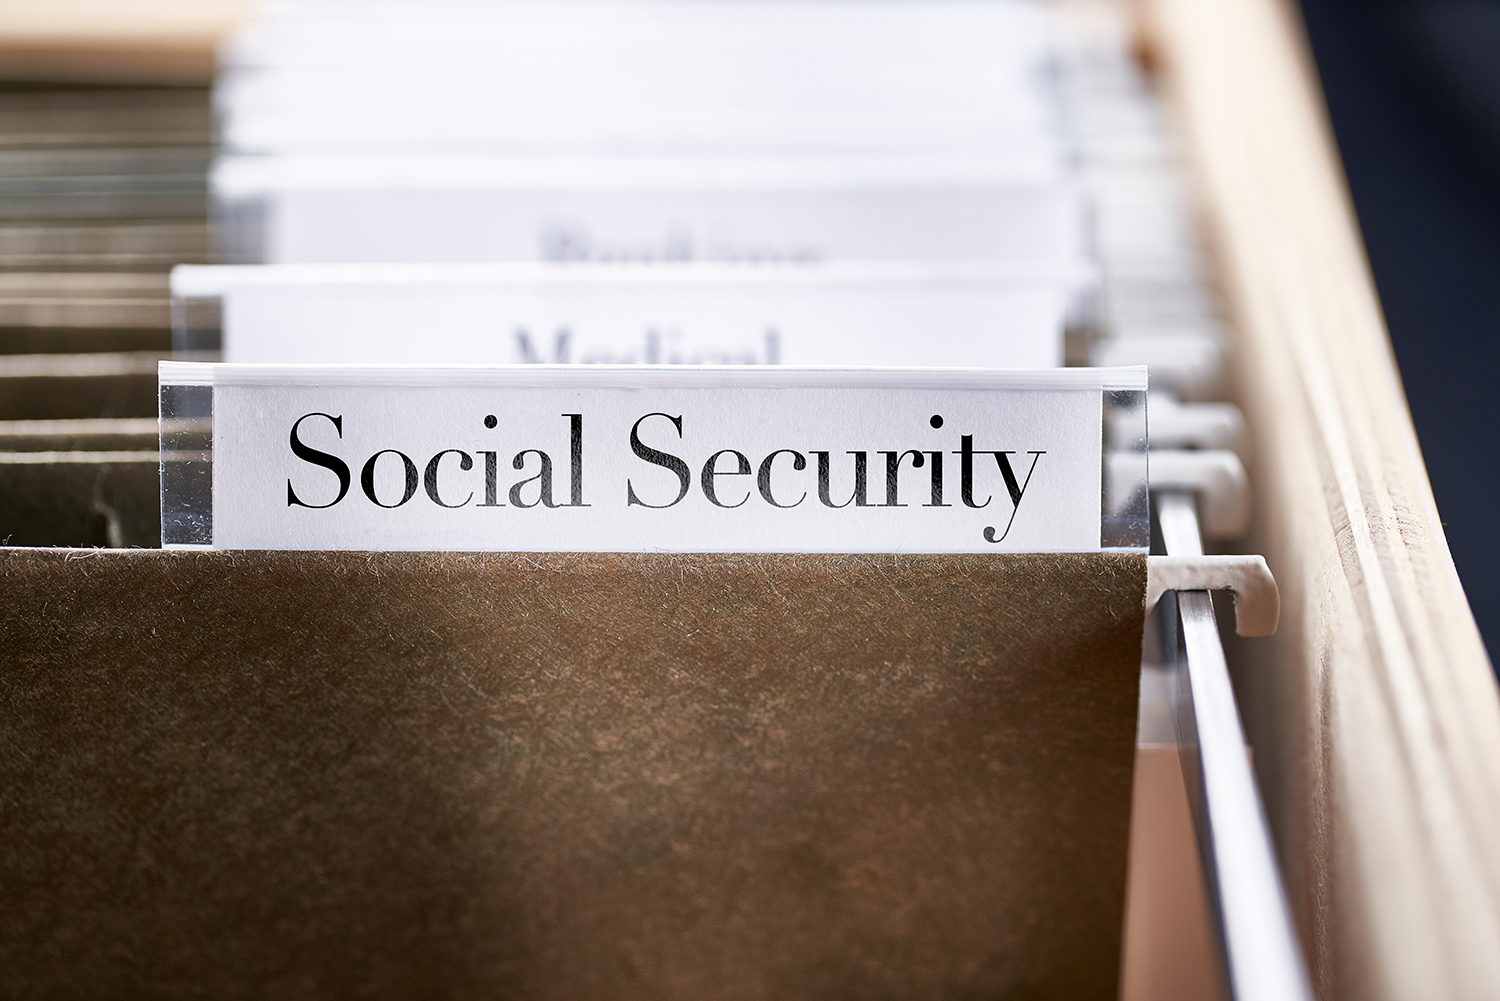 Social Security: Files and folders in desk drawer with labels and tabs: Home office management